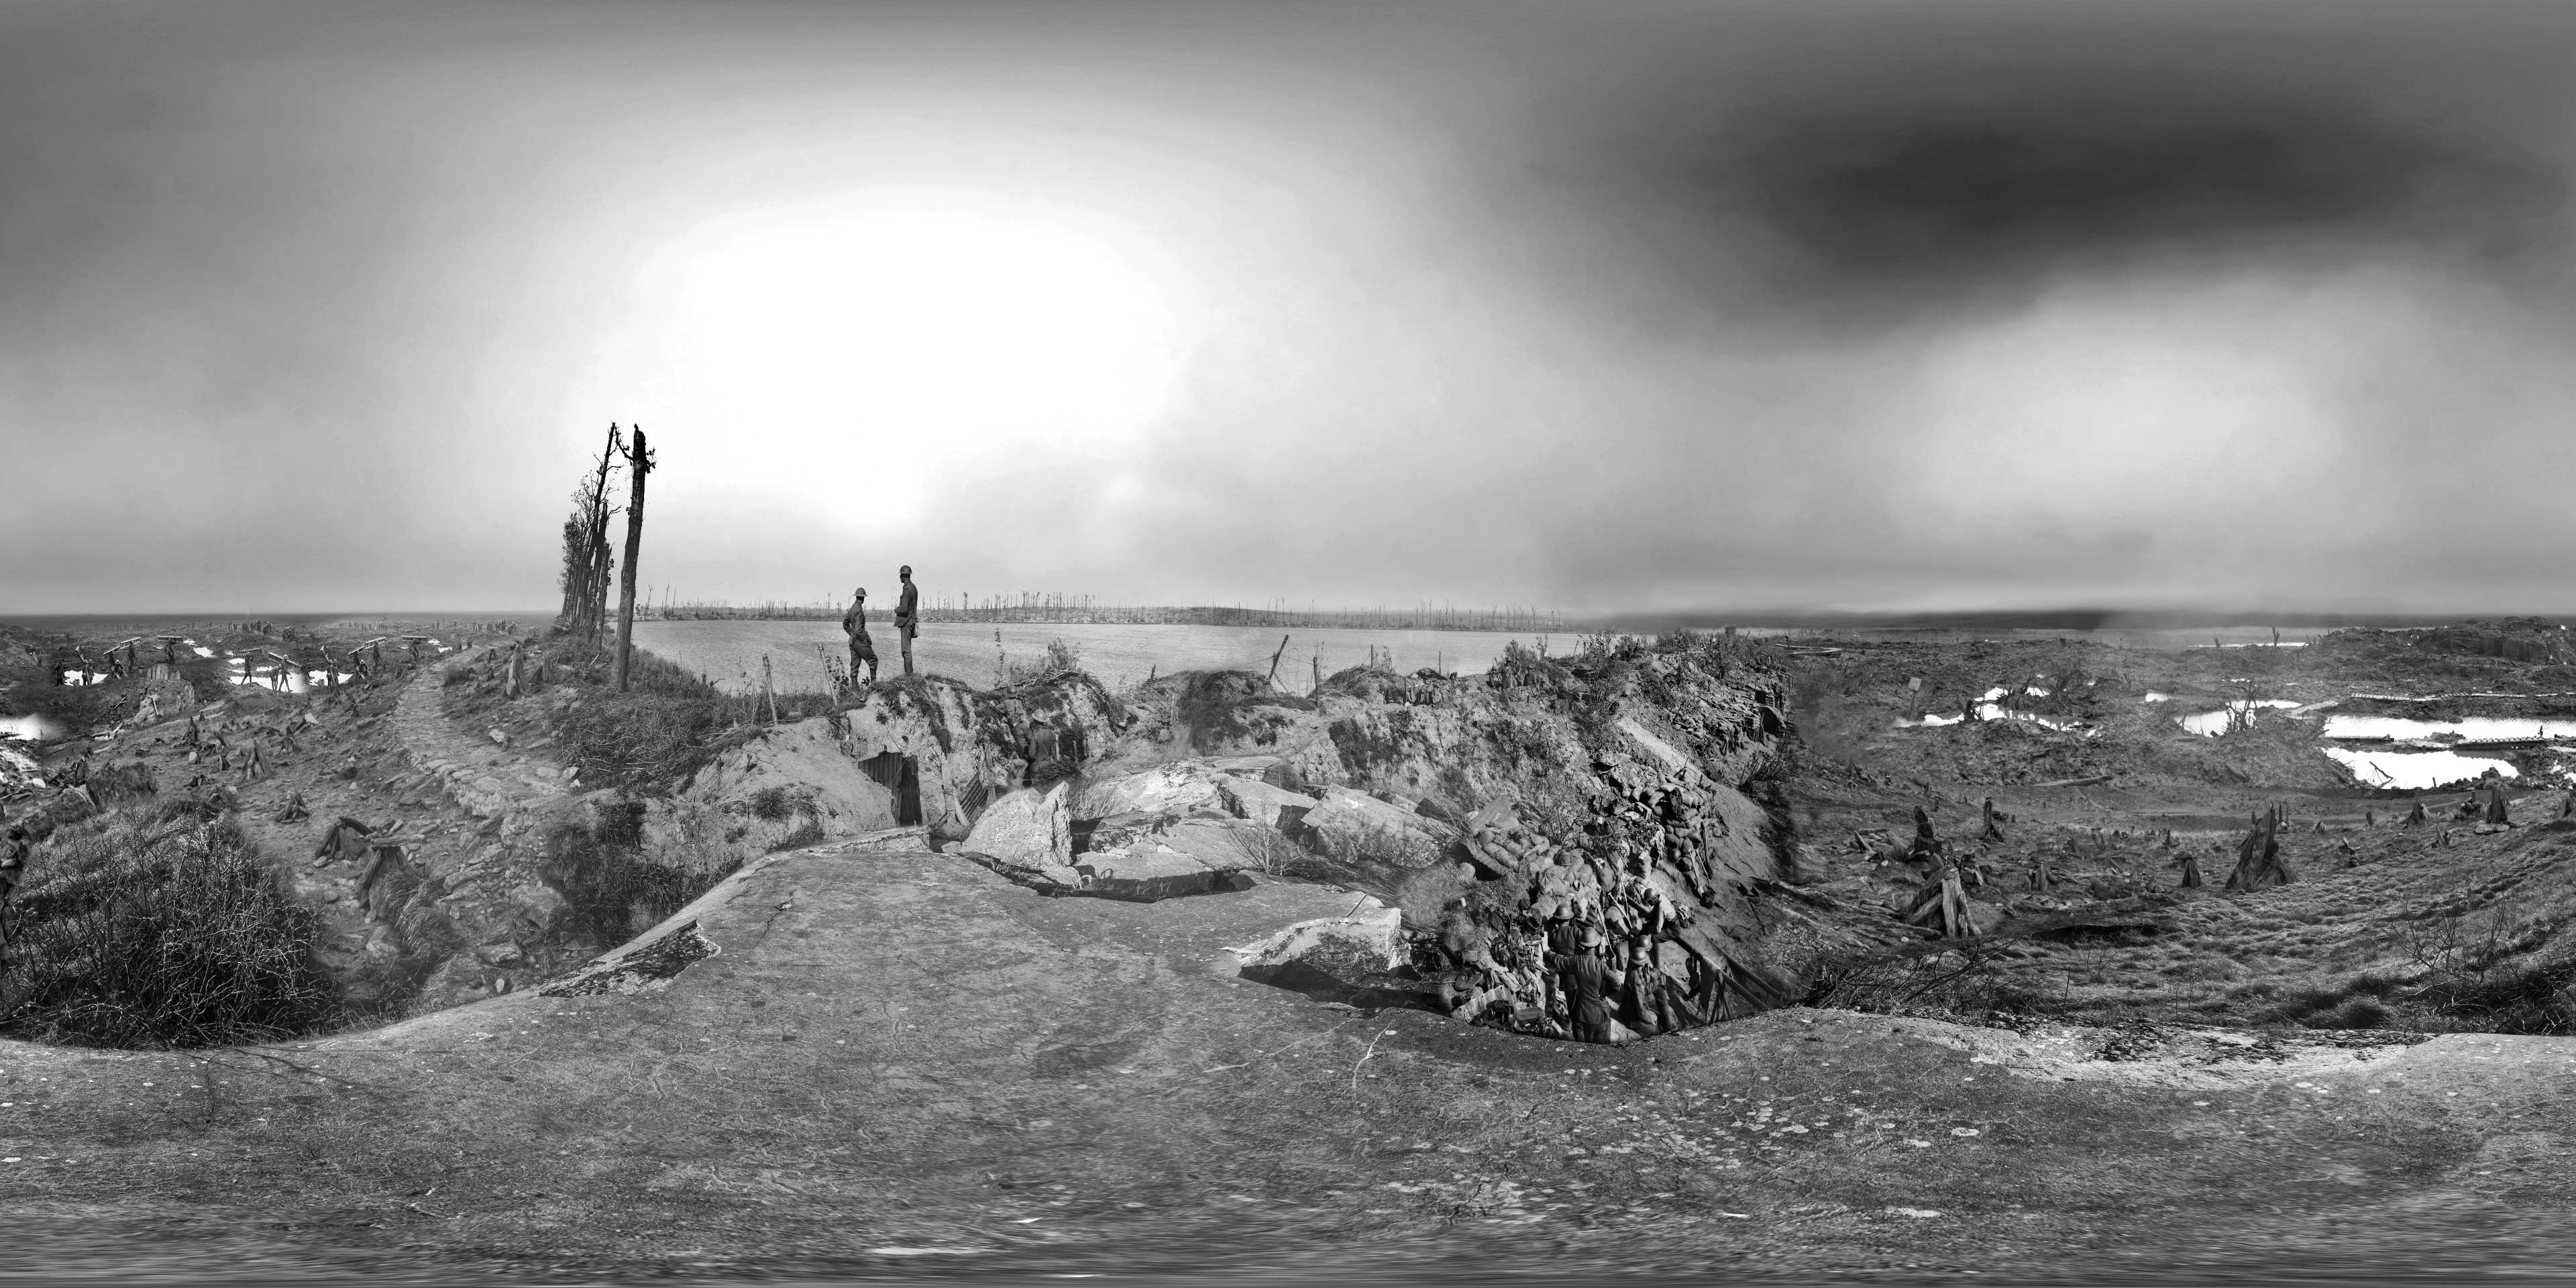 Commemoration of the Battle of Passchendaele - Still from Immersive Experience 02